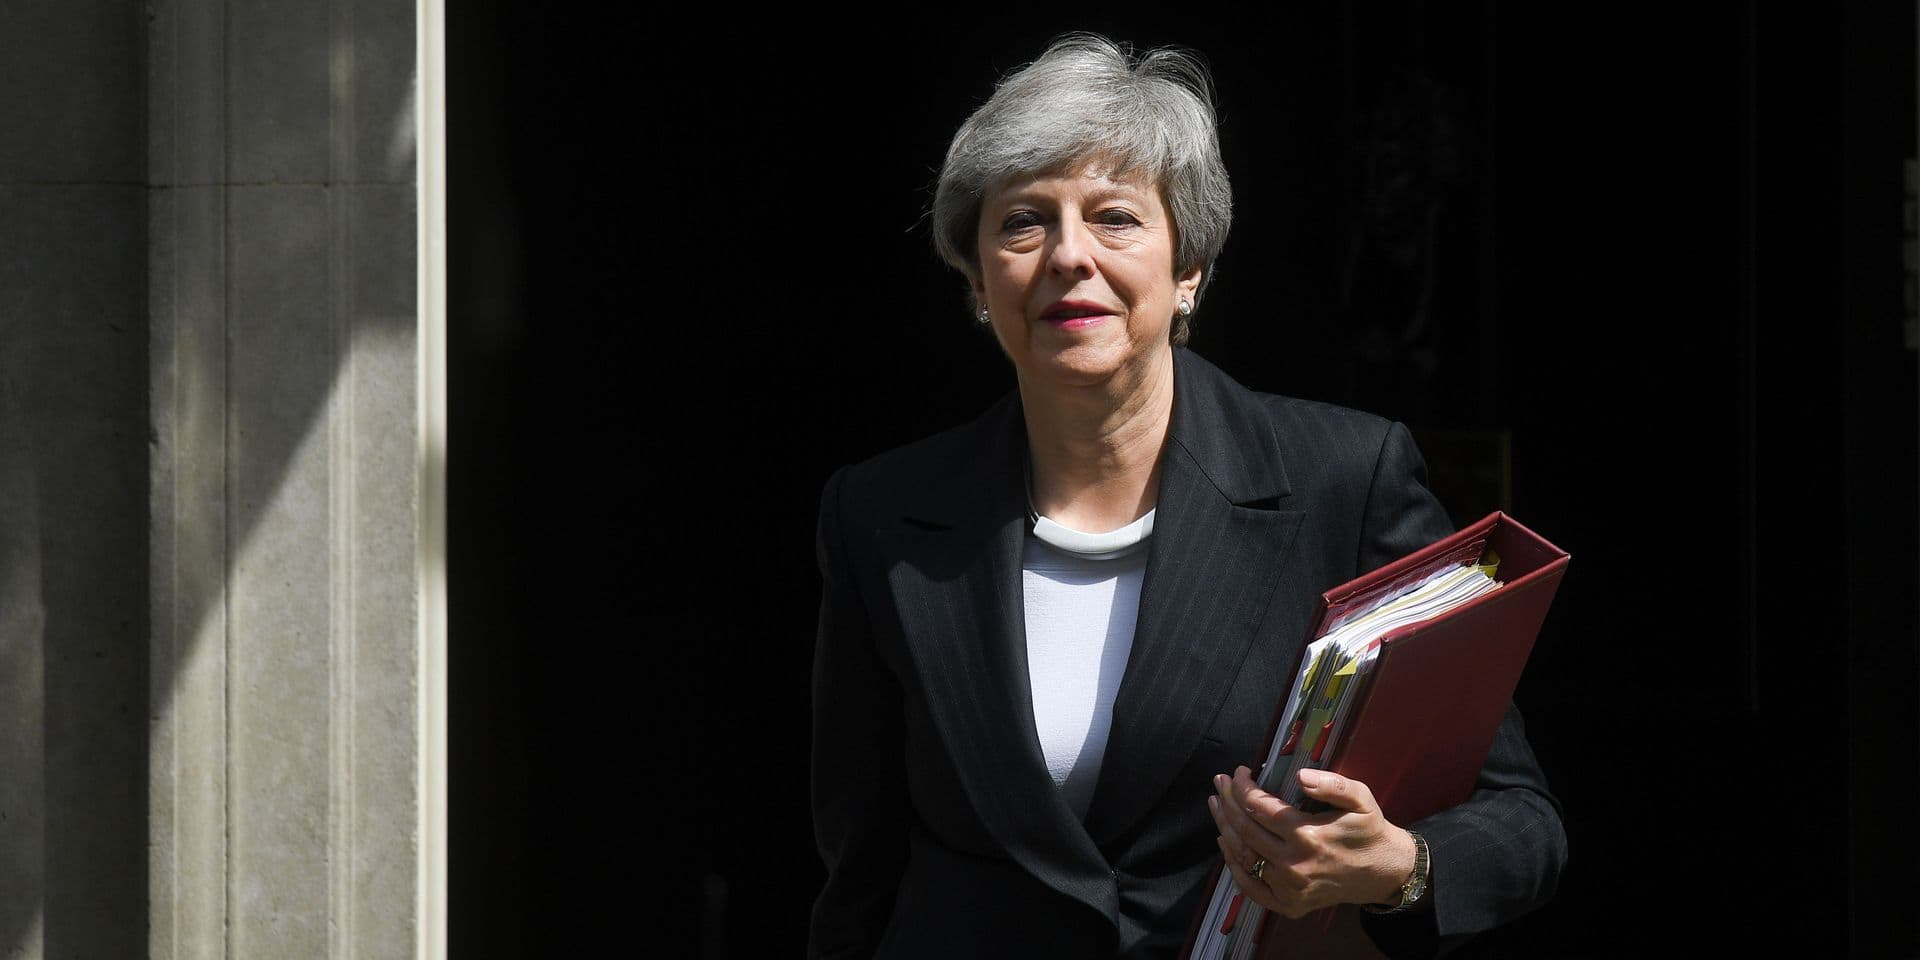 Brexit: Theresa May annonce sa démission